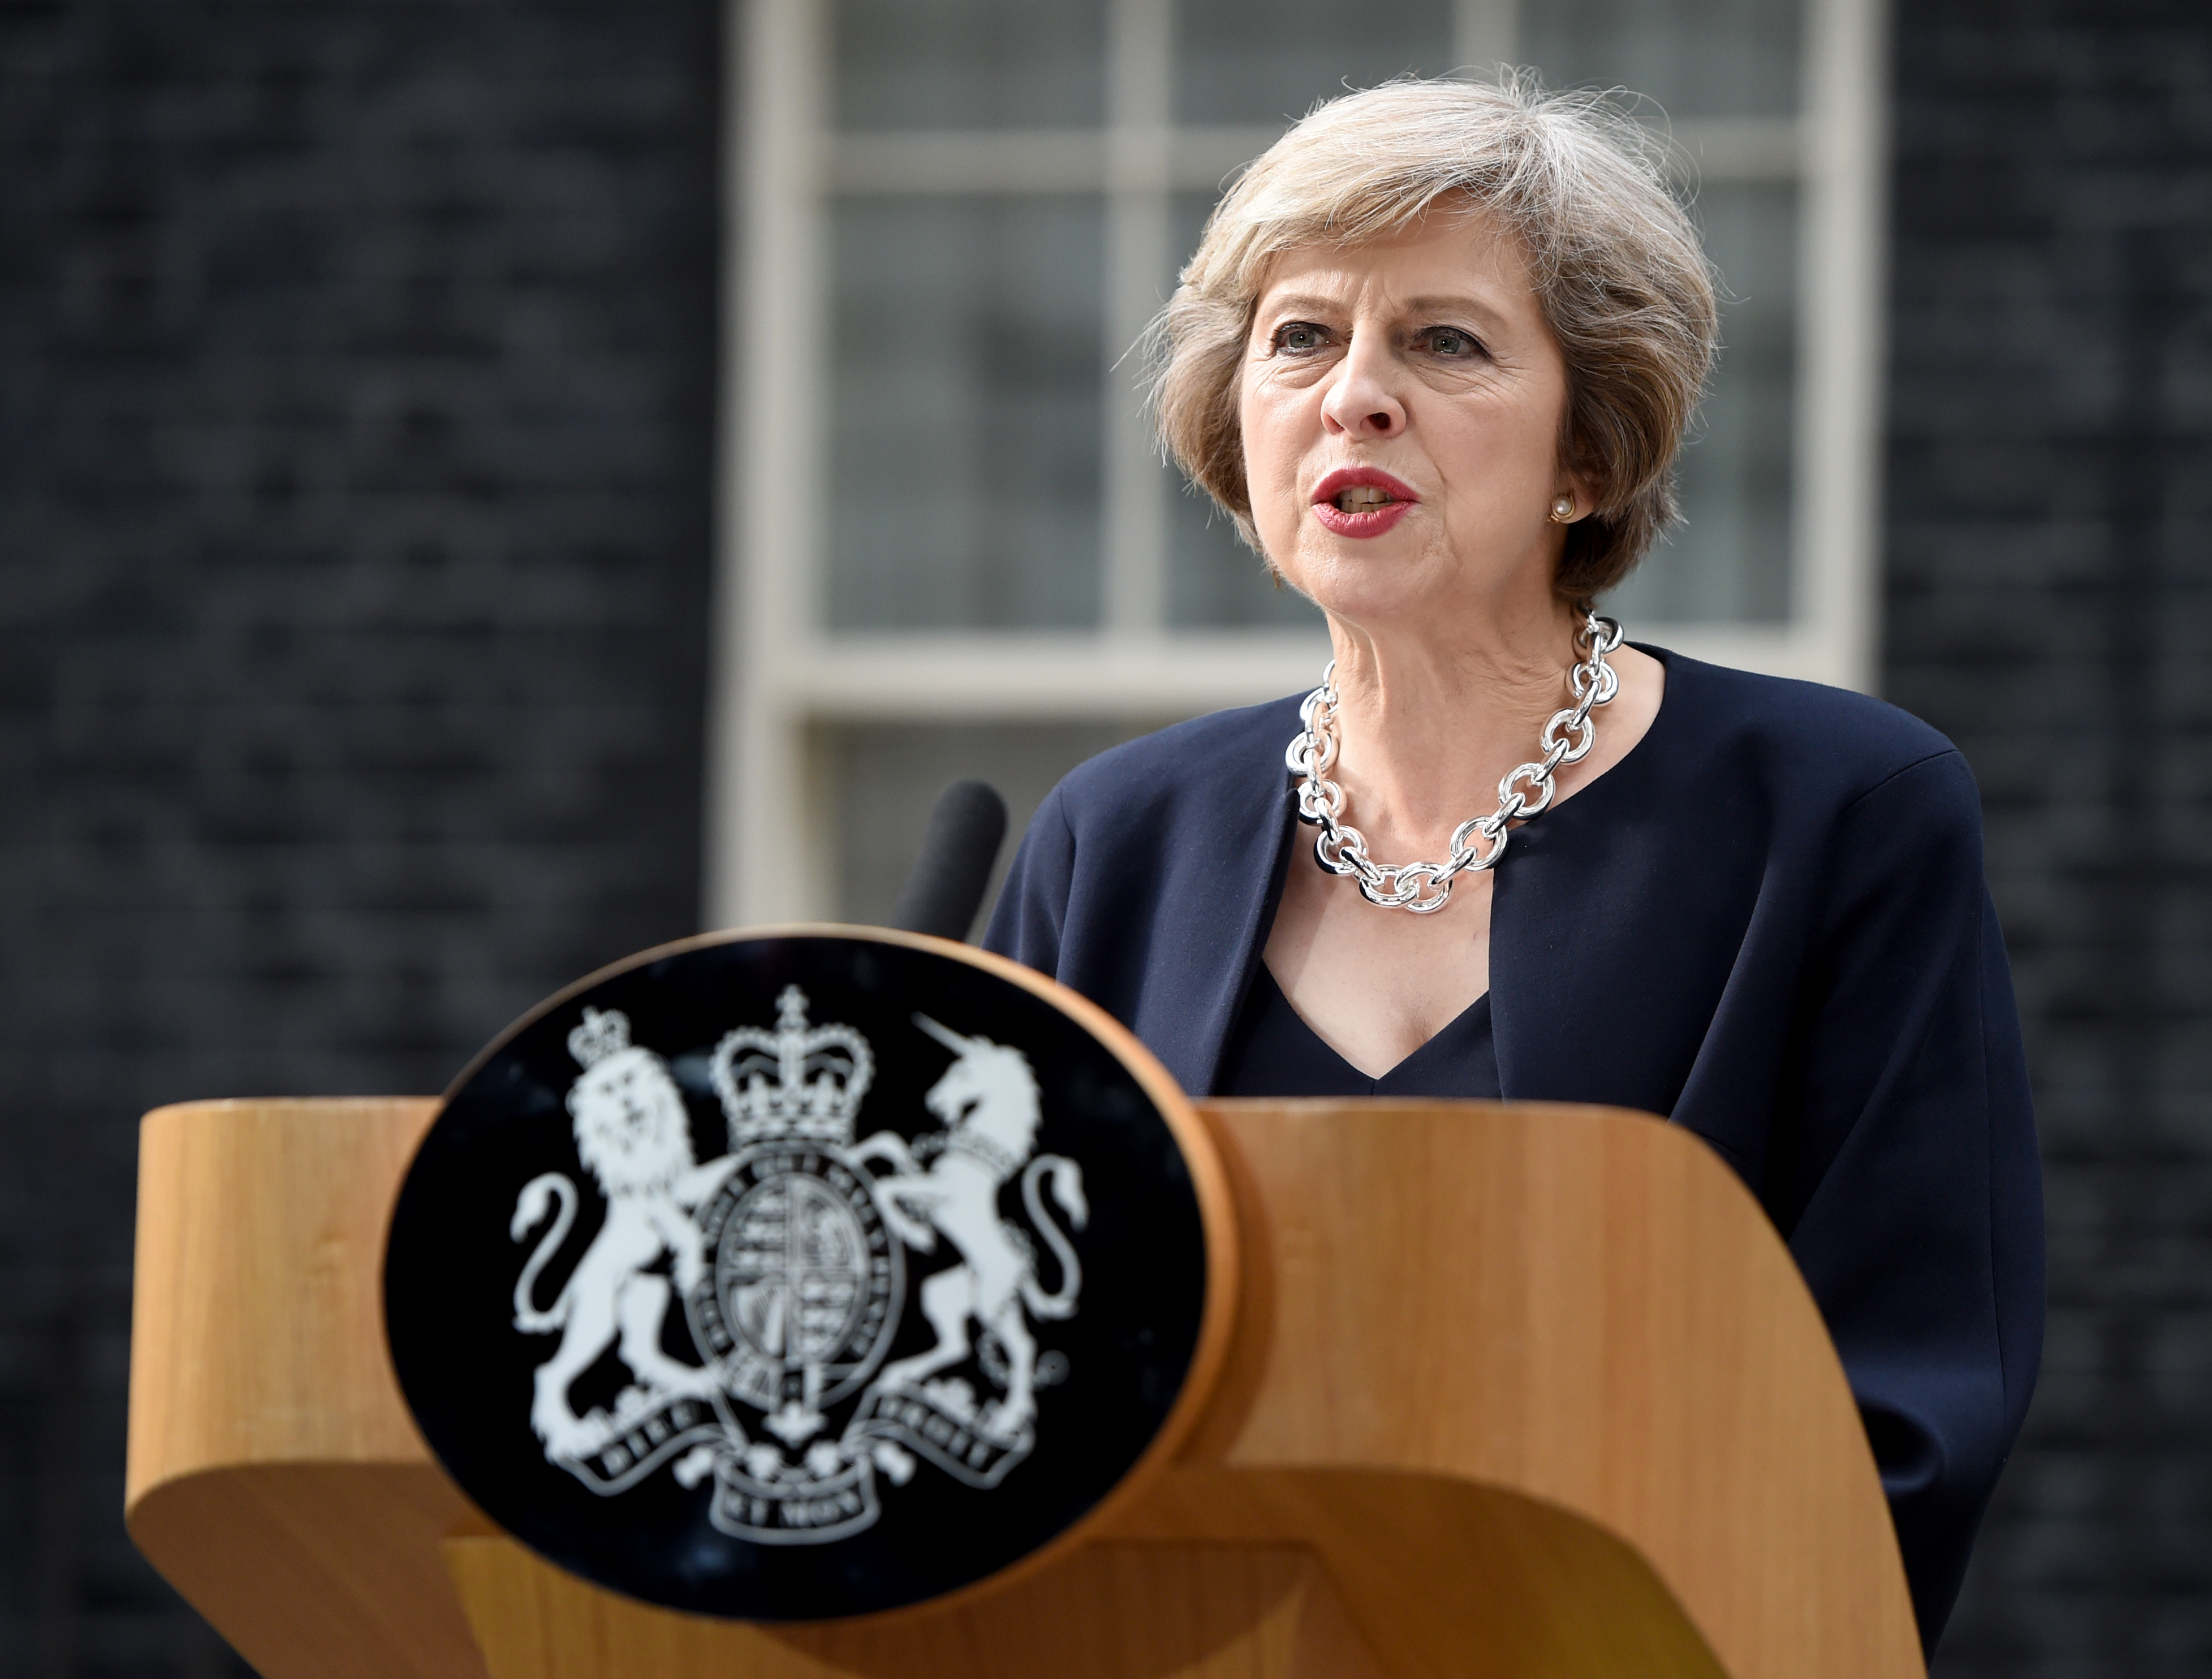 Uk muslims press for peace at 10 downing street - Uk Eid Al Adha Message From Pm Theresa May The Muslim Newsthe Muslim News